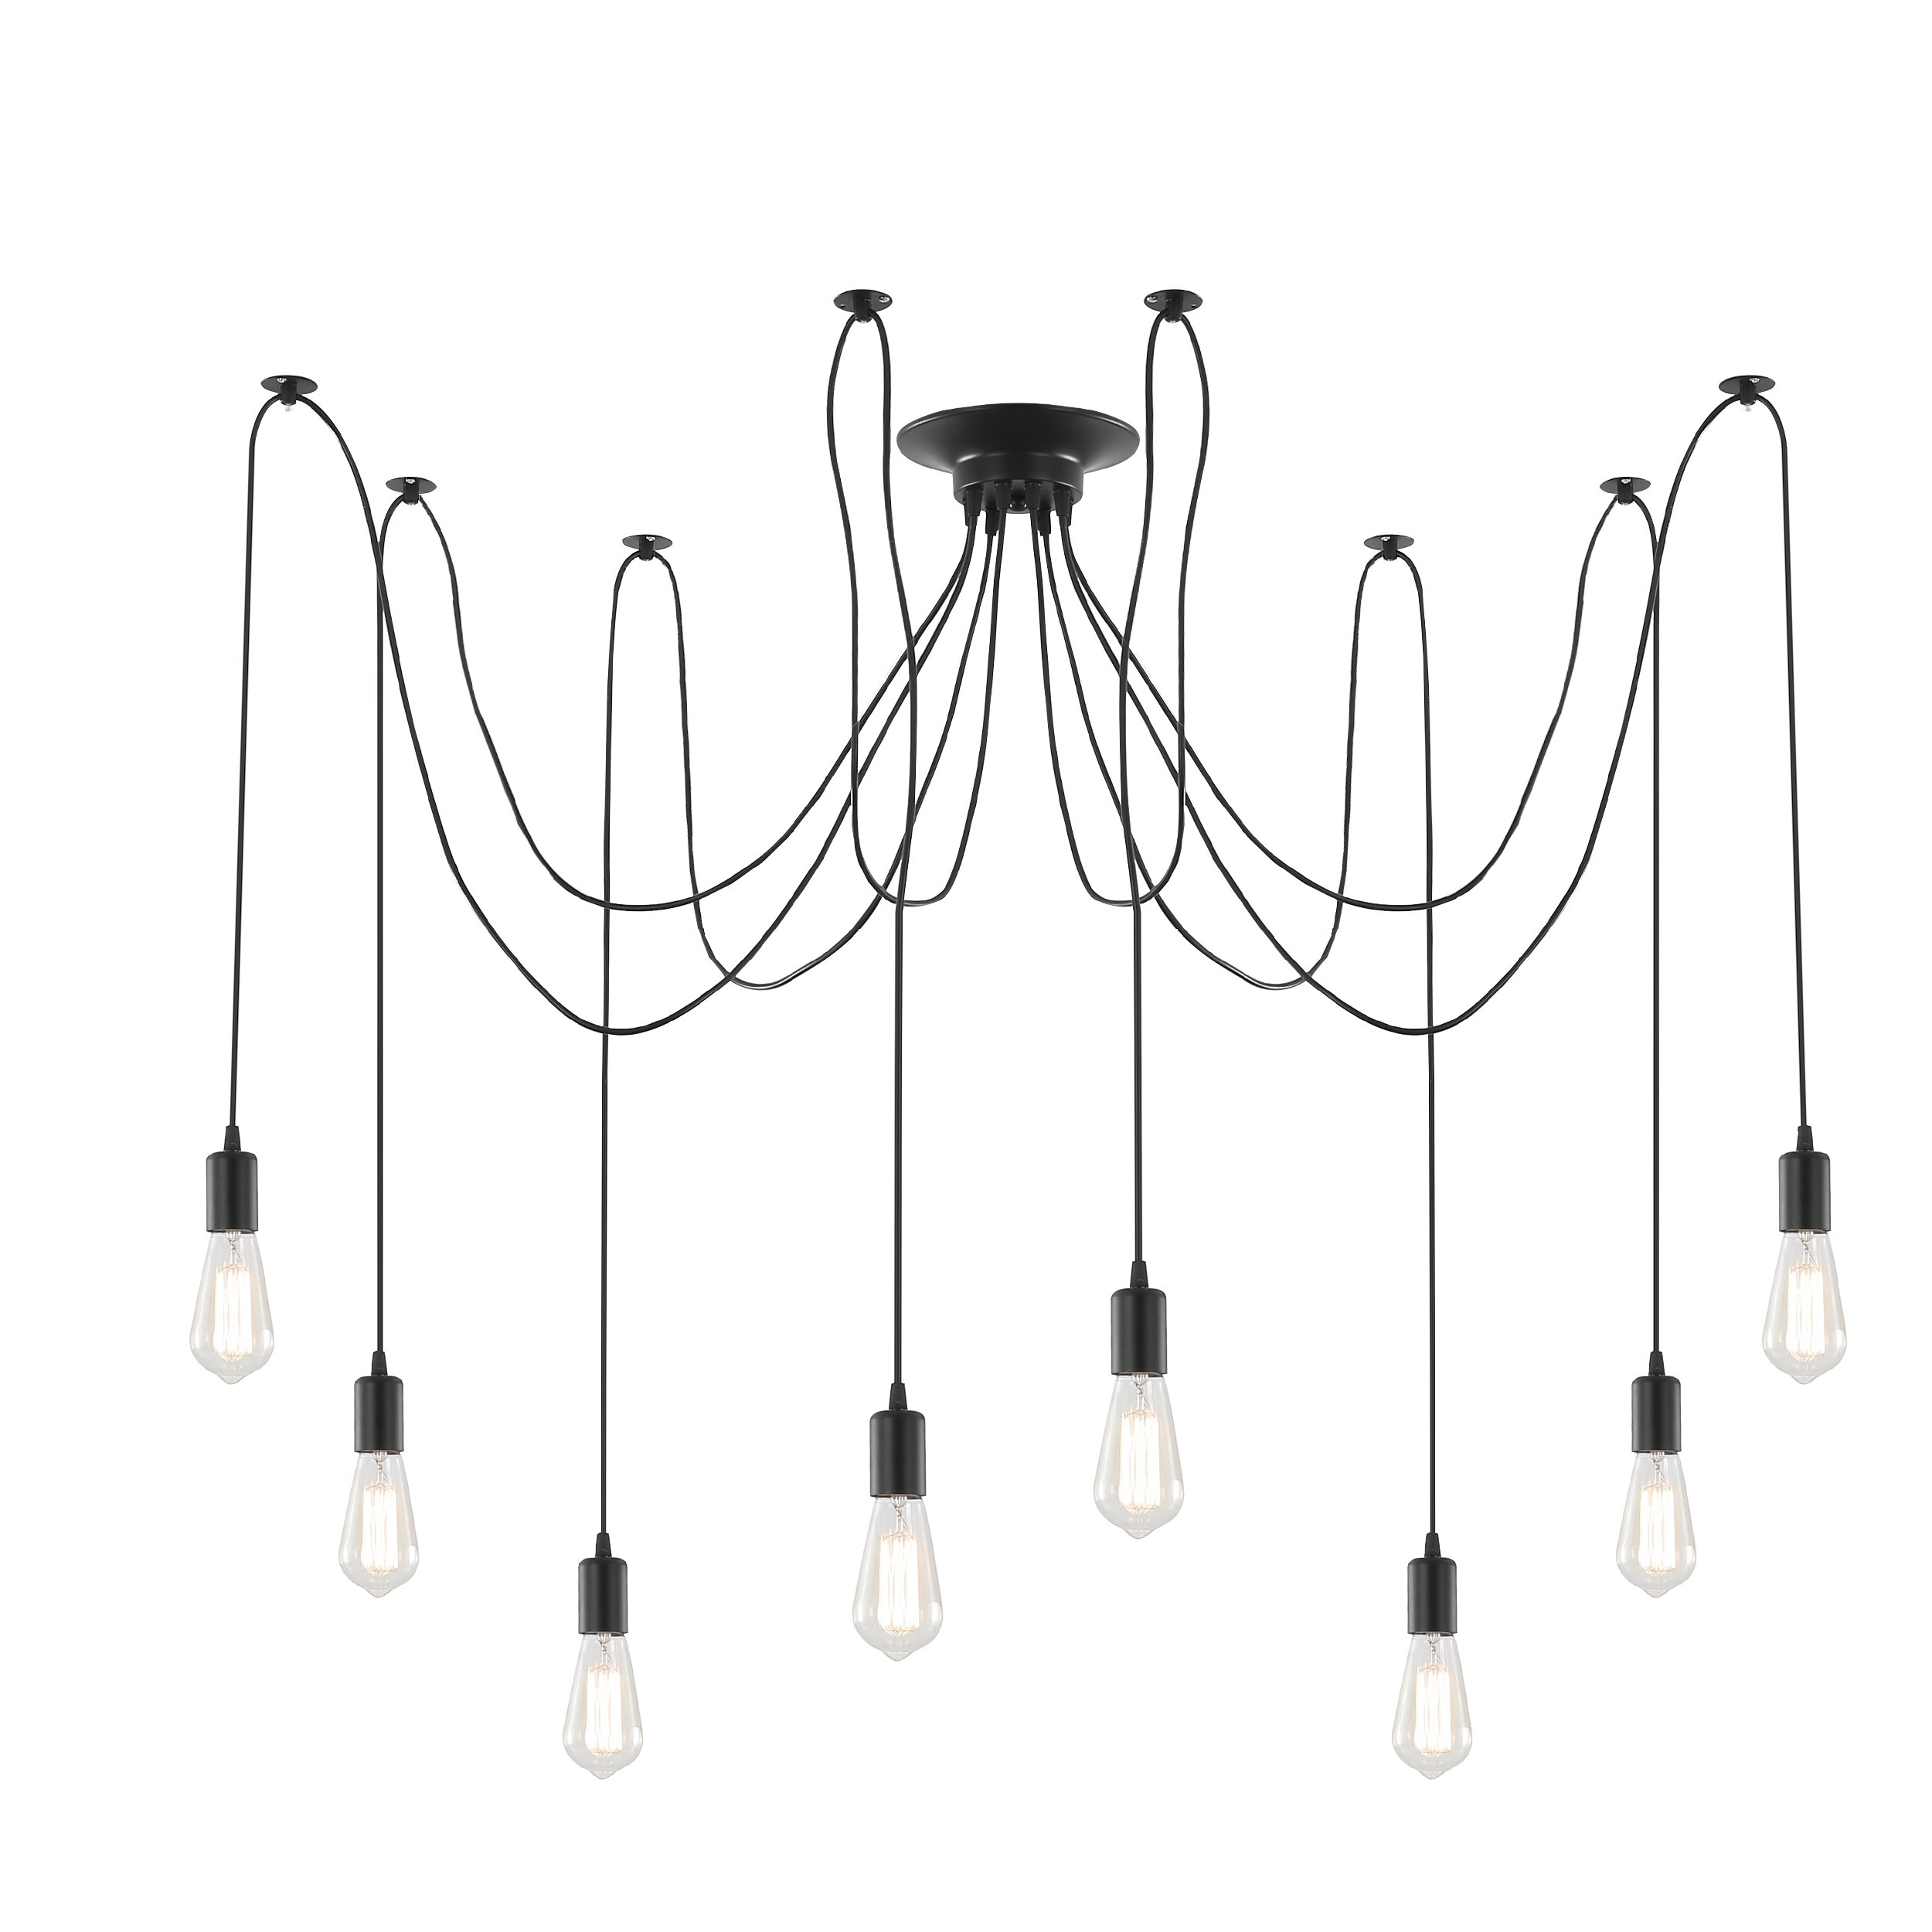 Light Society Tentacle 10-Light Chandelier Swag Pendant, Matte Black, Modern Industrial Lighting Fixture (LS-C105)